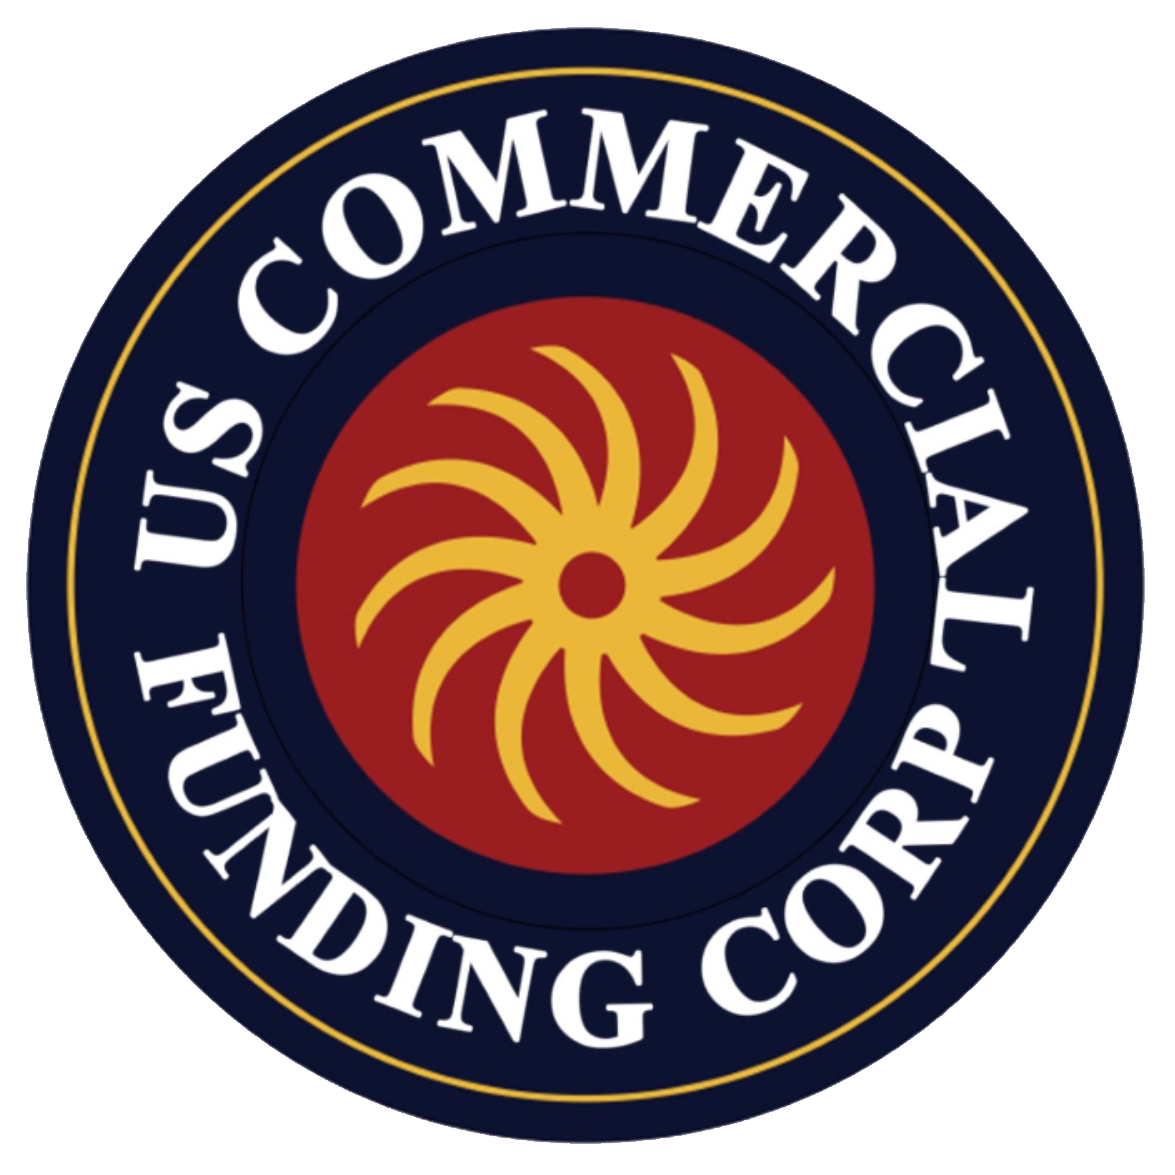 US Commercial Funding Corp.